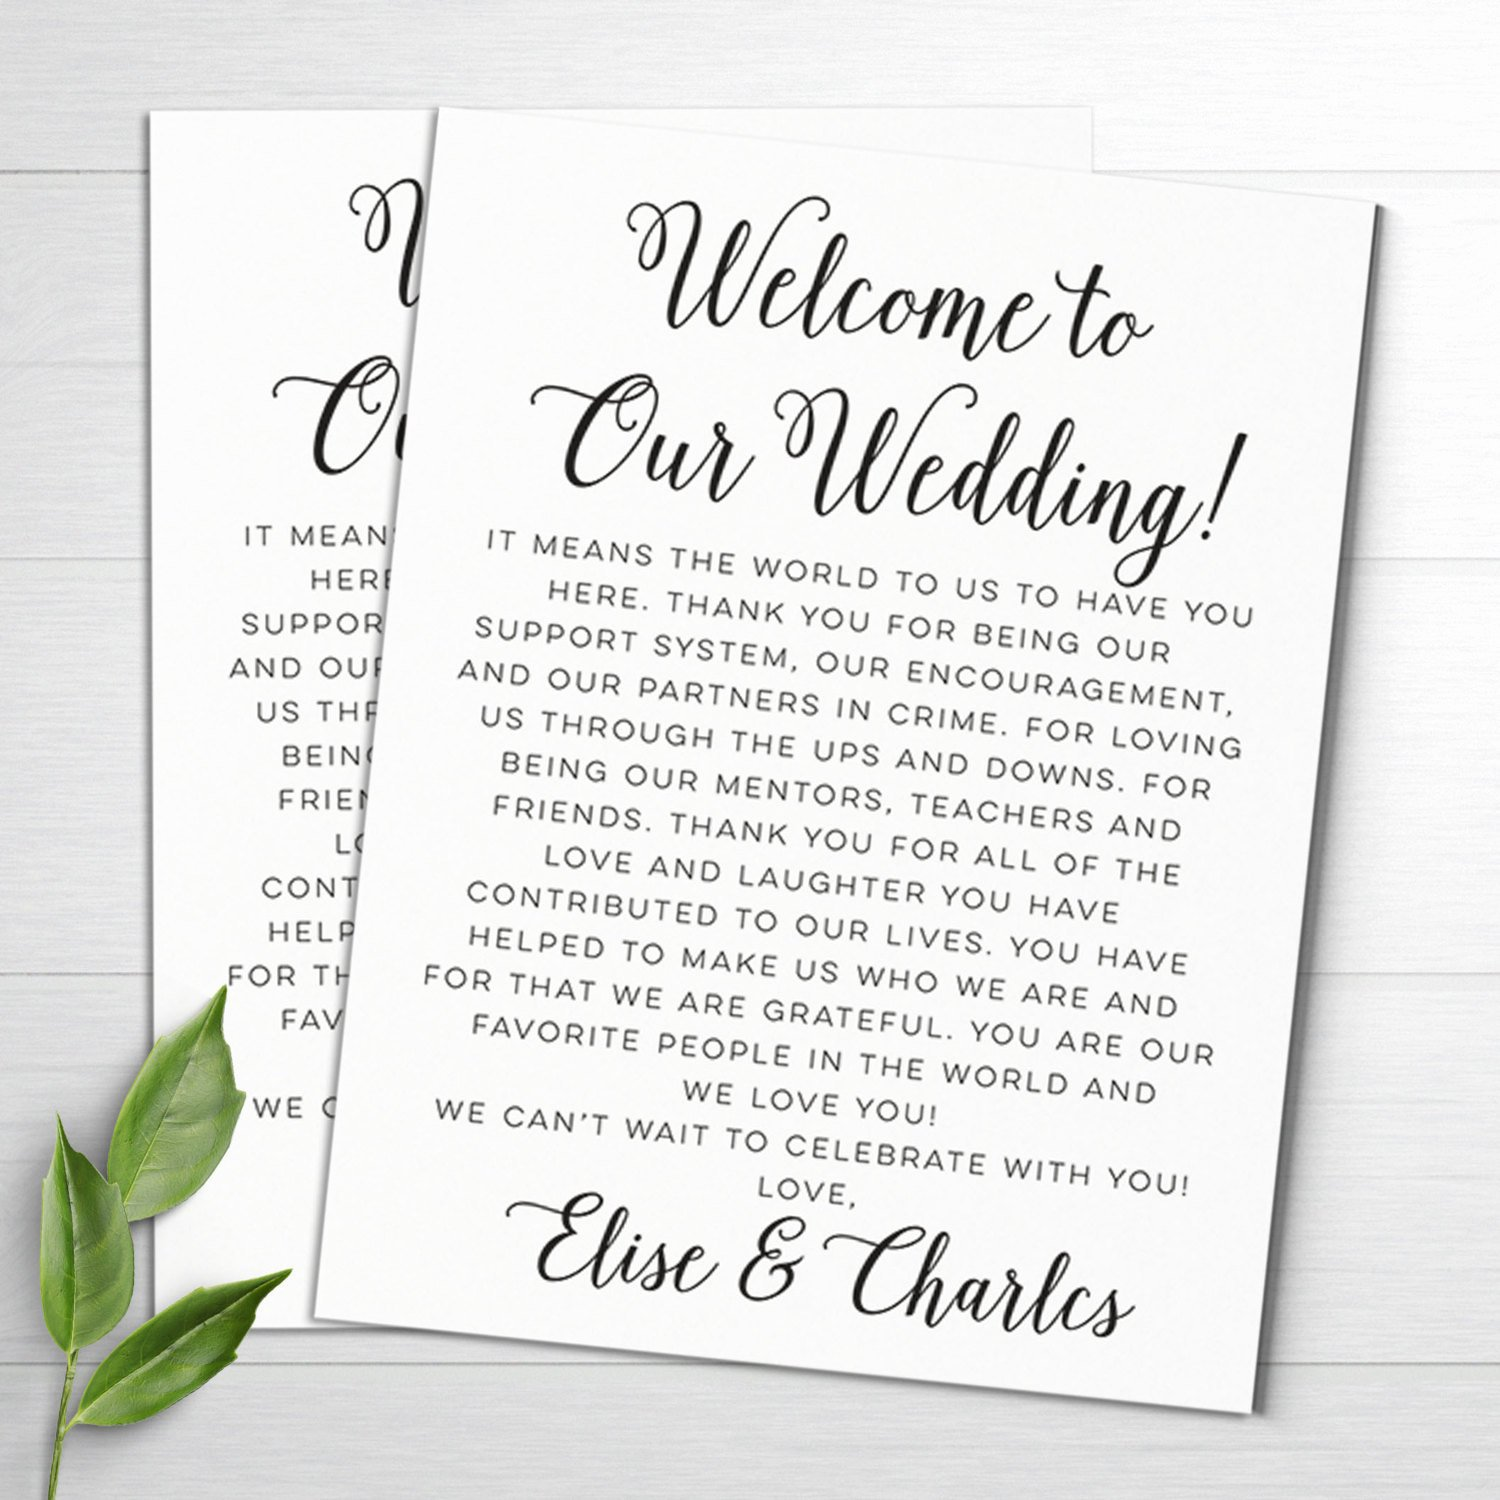 Wedding Hotel Welcome Letter Template Best Of Wedding Wel E Letters Wedding Itineraries Wedding Wel E